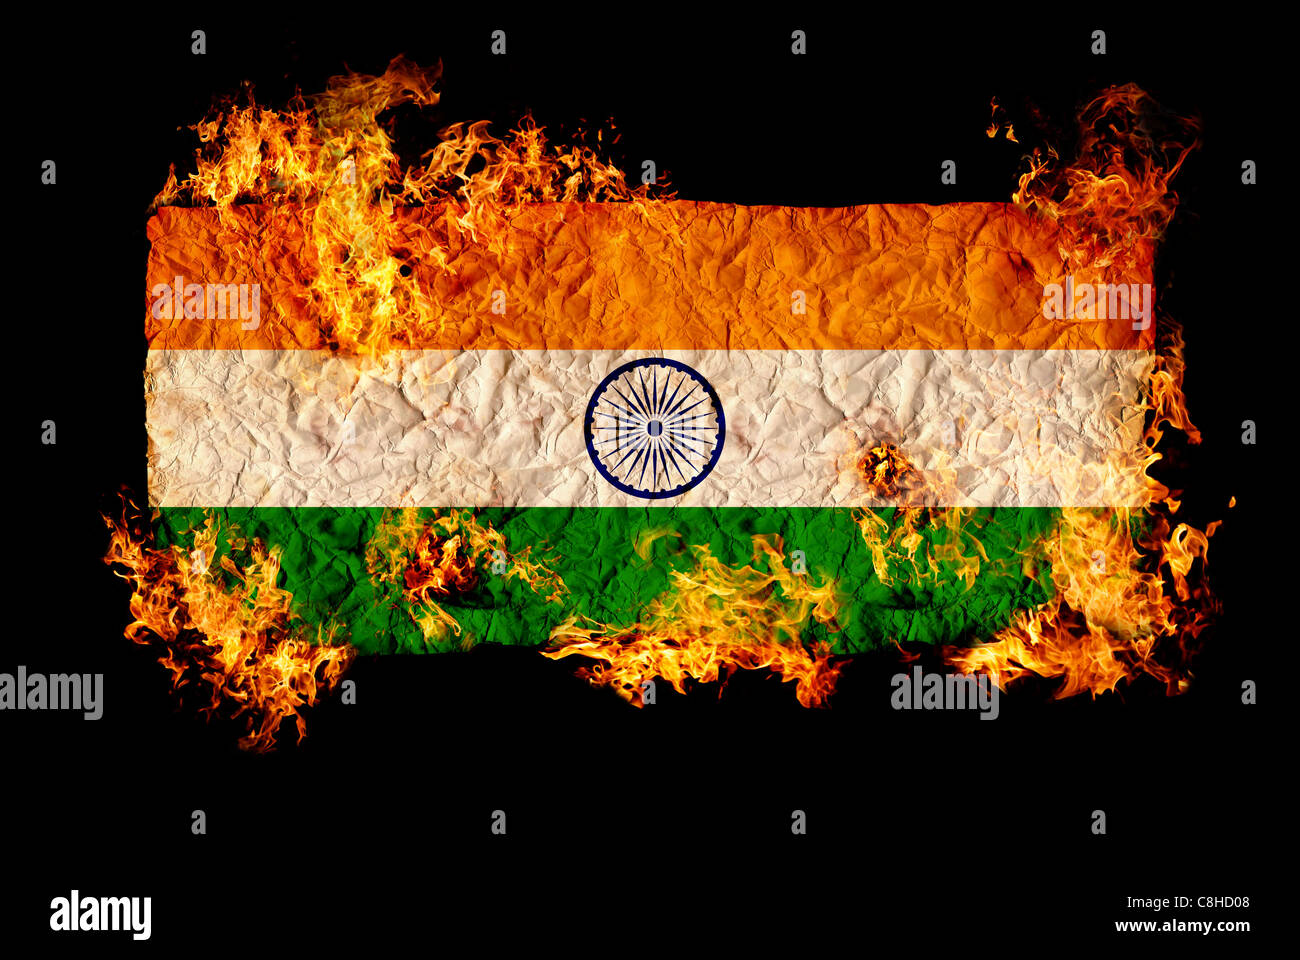 National symbols and flag of india stock photo royalty free image national symbols and flag of india biocorpaavc Image collections